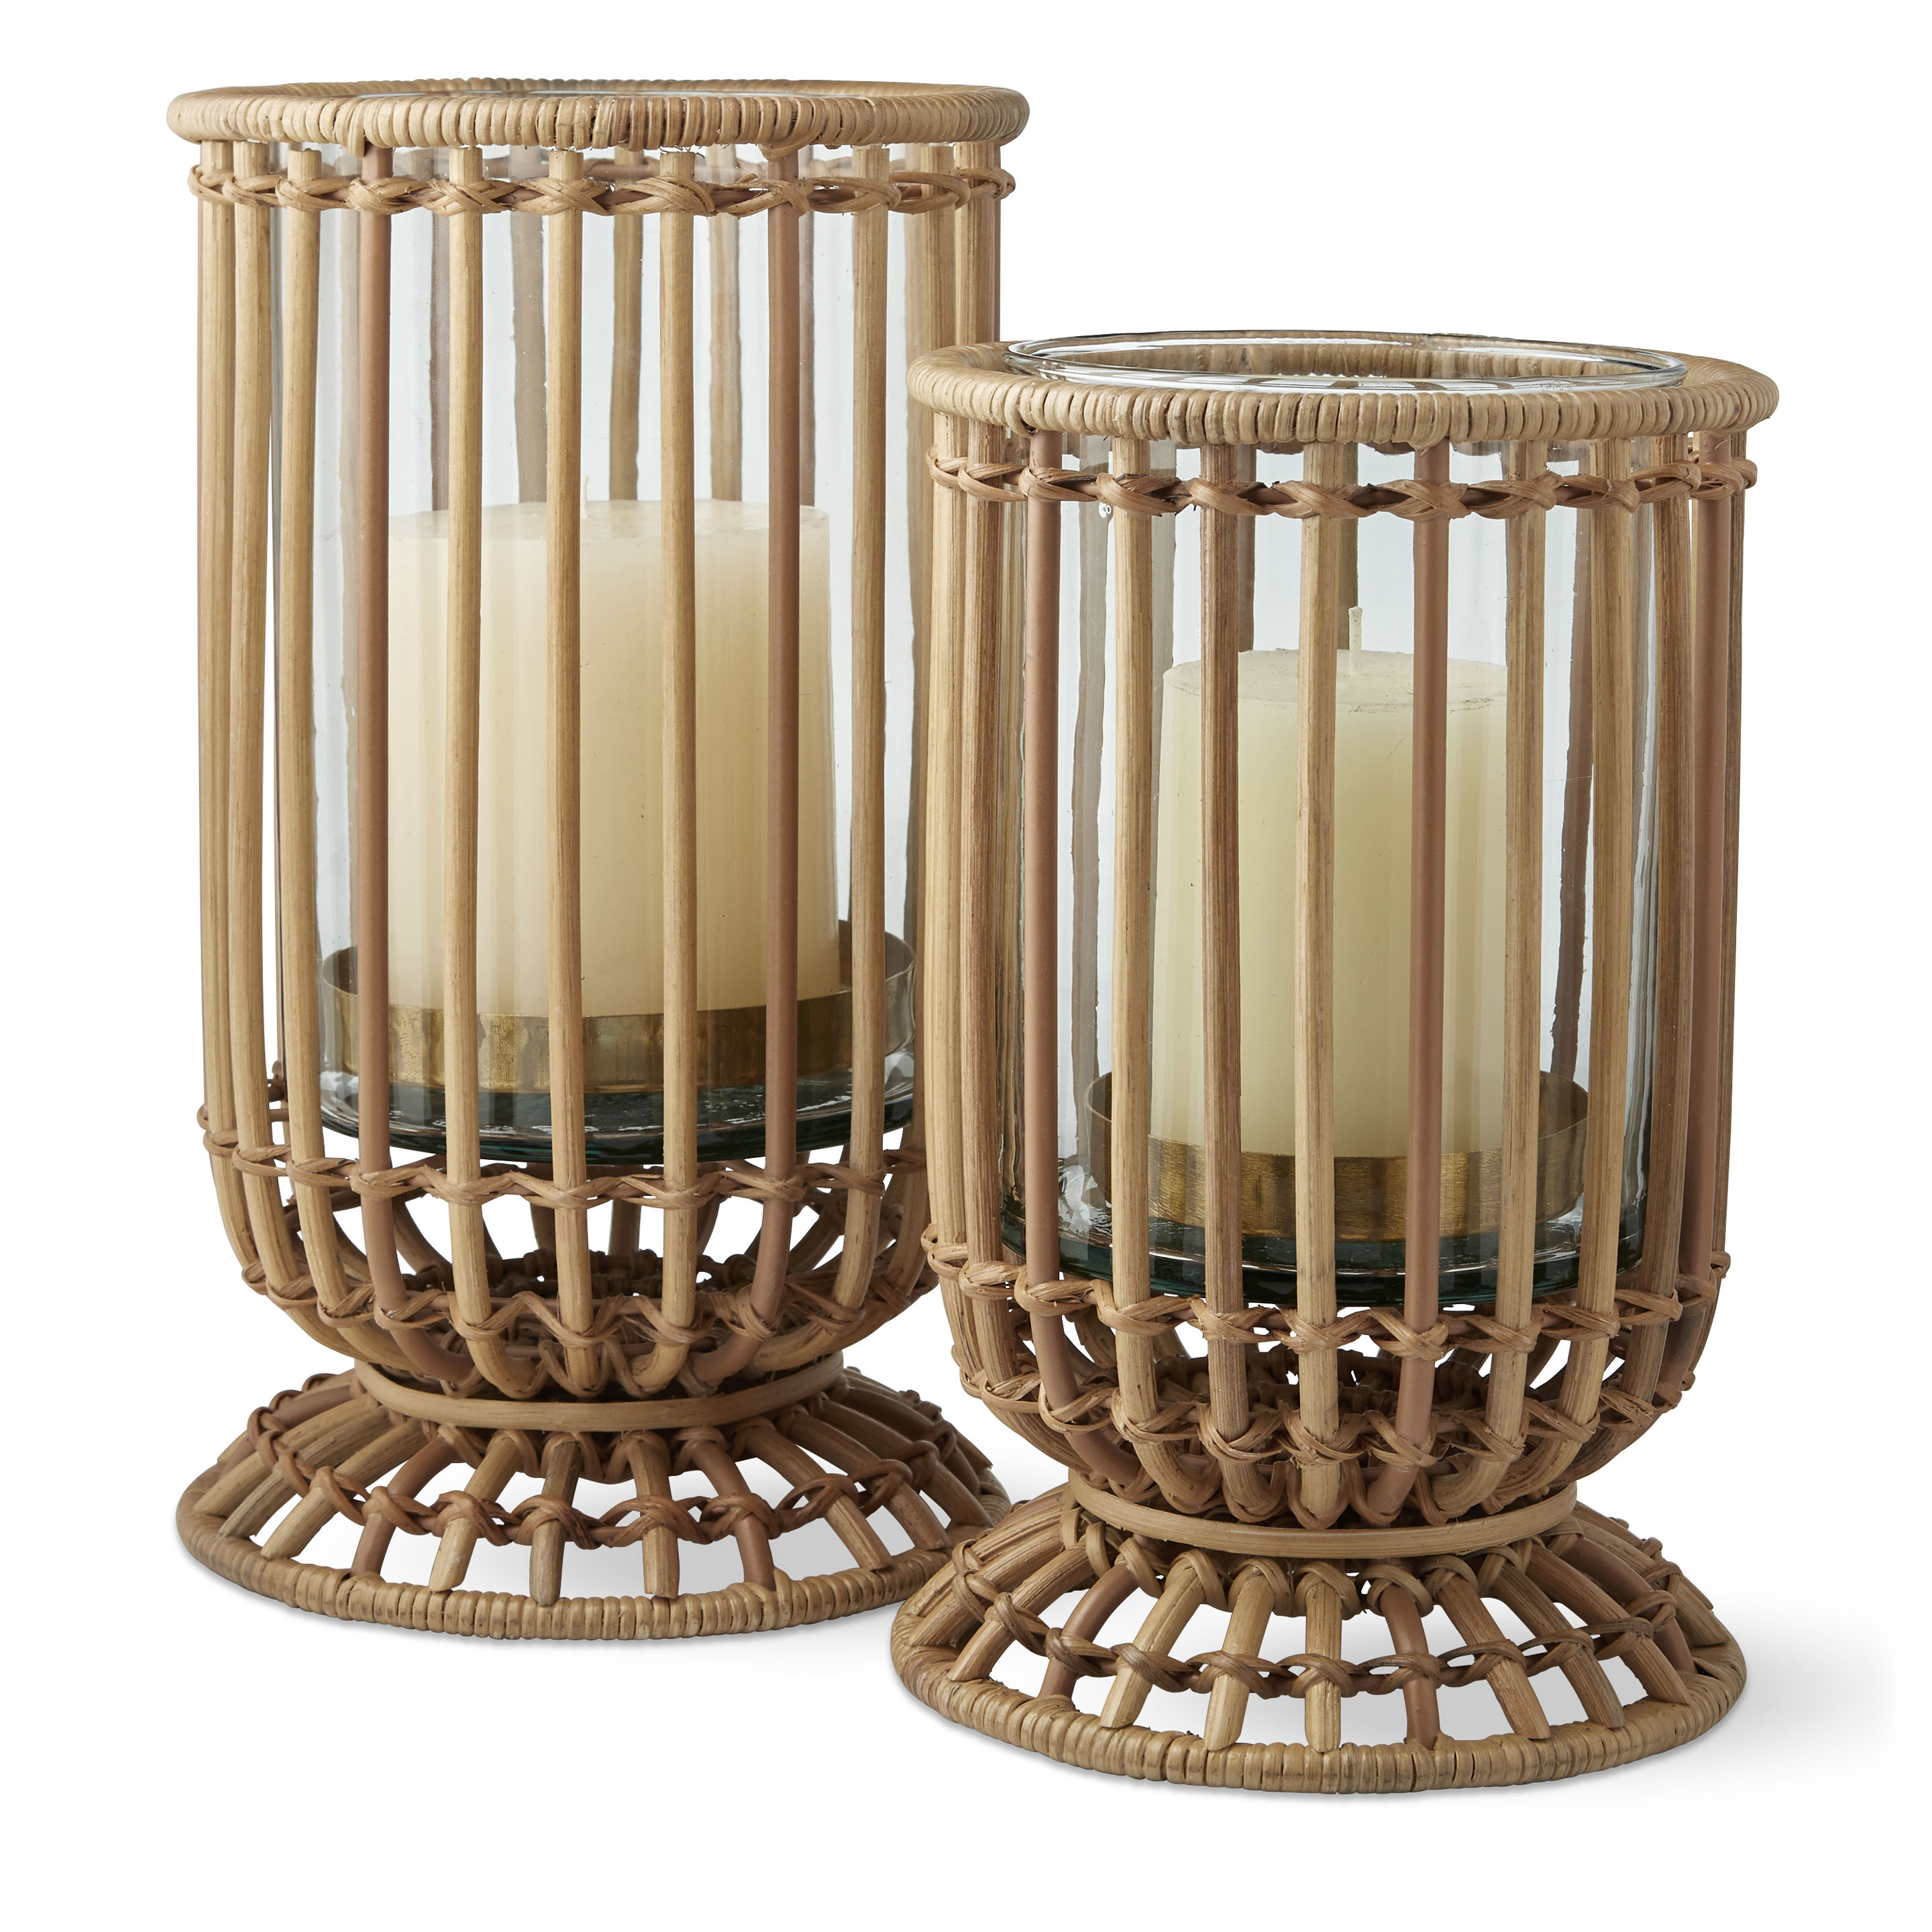 Ok 4 William Sonoma Aerin Wicker Hurricane Digs Net